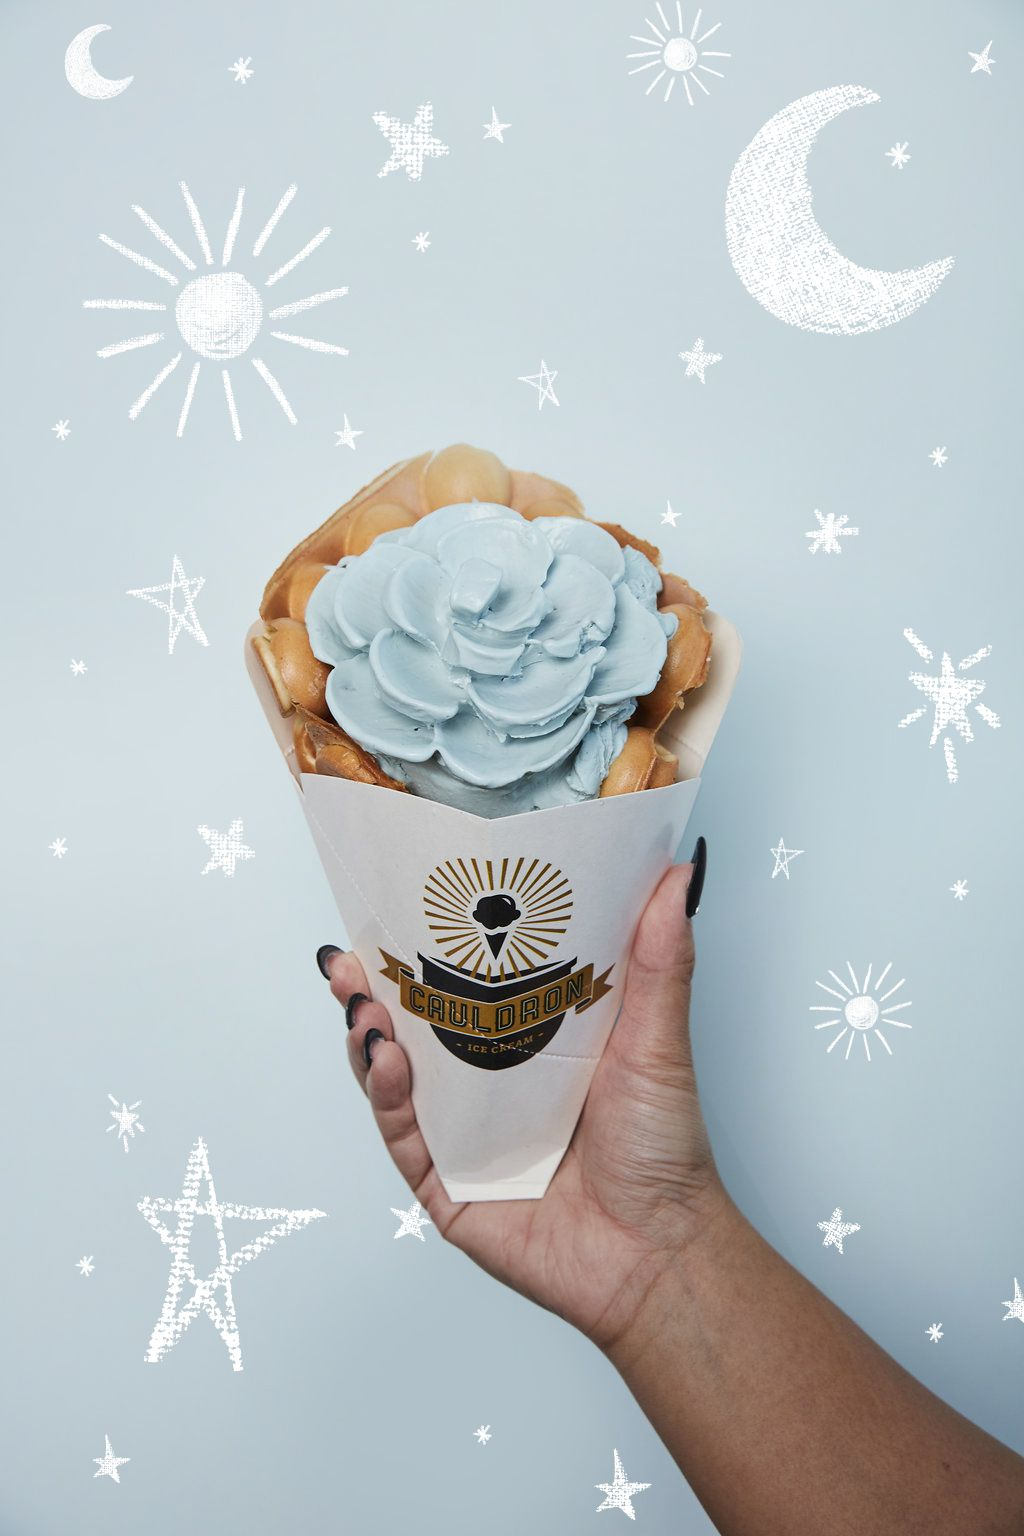 One of the most innovative ice cream concepts in the nation, Cauldron Ice Cream, is officially bringing its made-to-order nitrogen ice cream and viral OG Puffle Cone to Northern San Diego County, with locations planned for Carlsbad, San Marcos, and the Del Mar/Encinitas area.